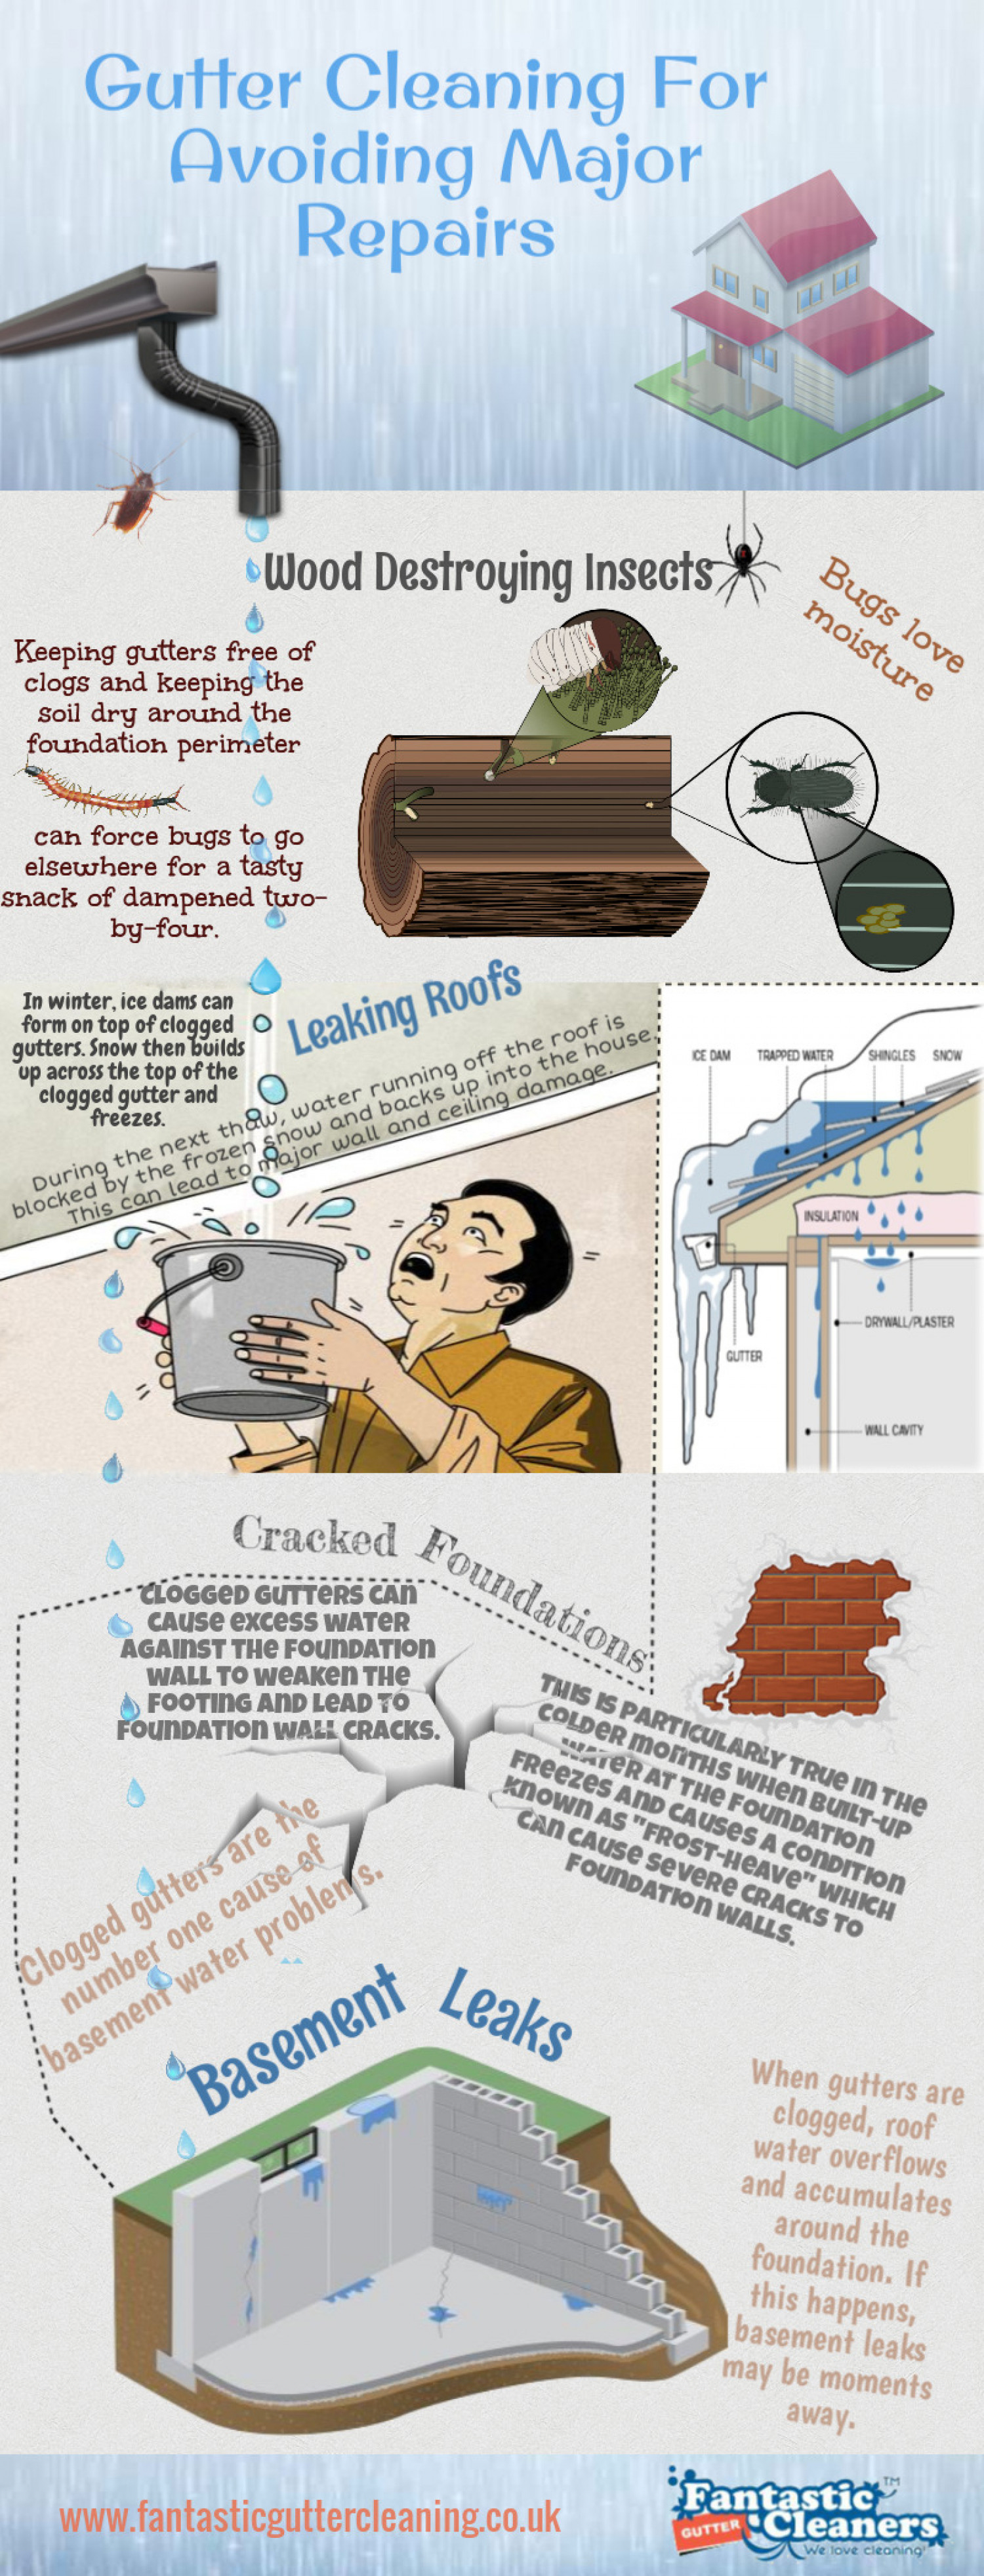 Gutter Cleaning For Avoiding Major Repairs Infographic